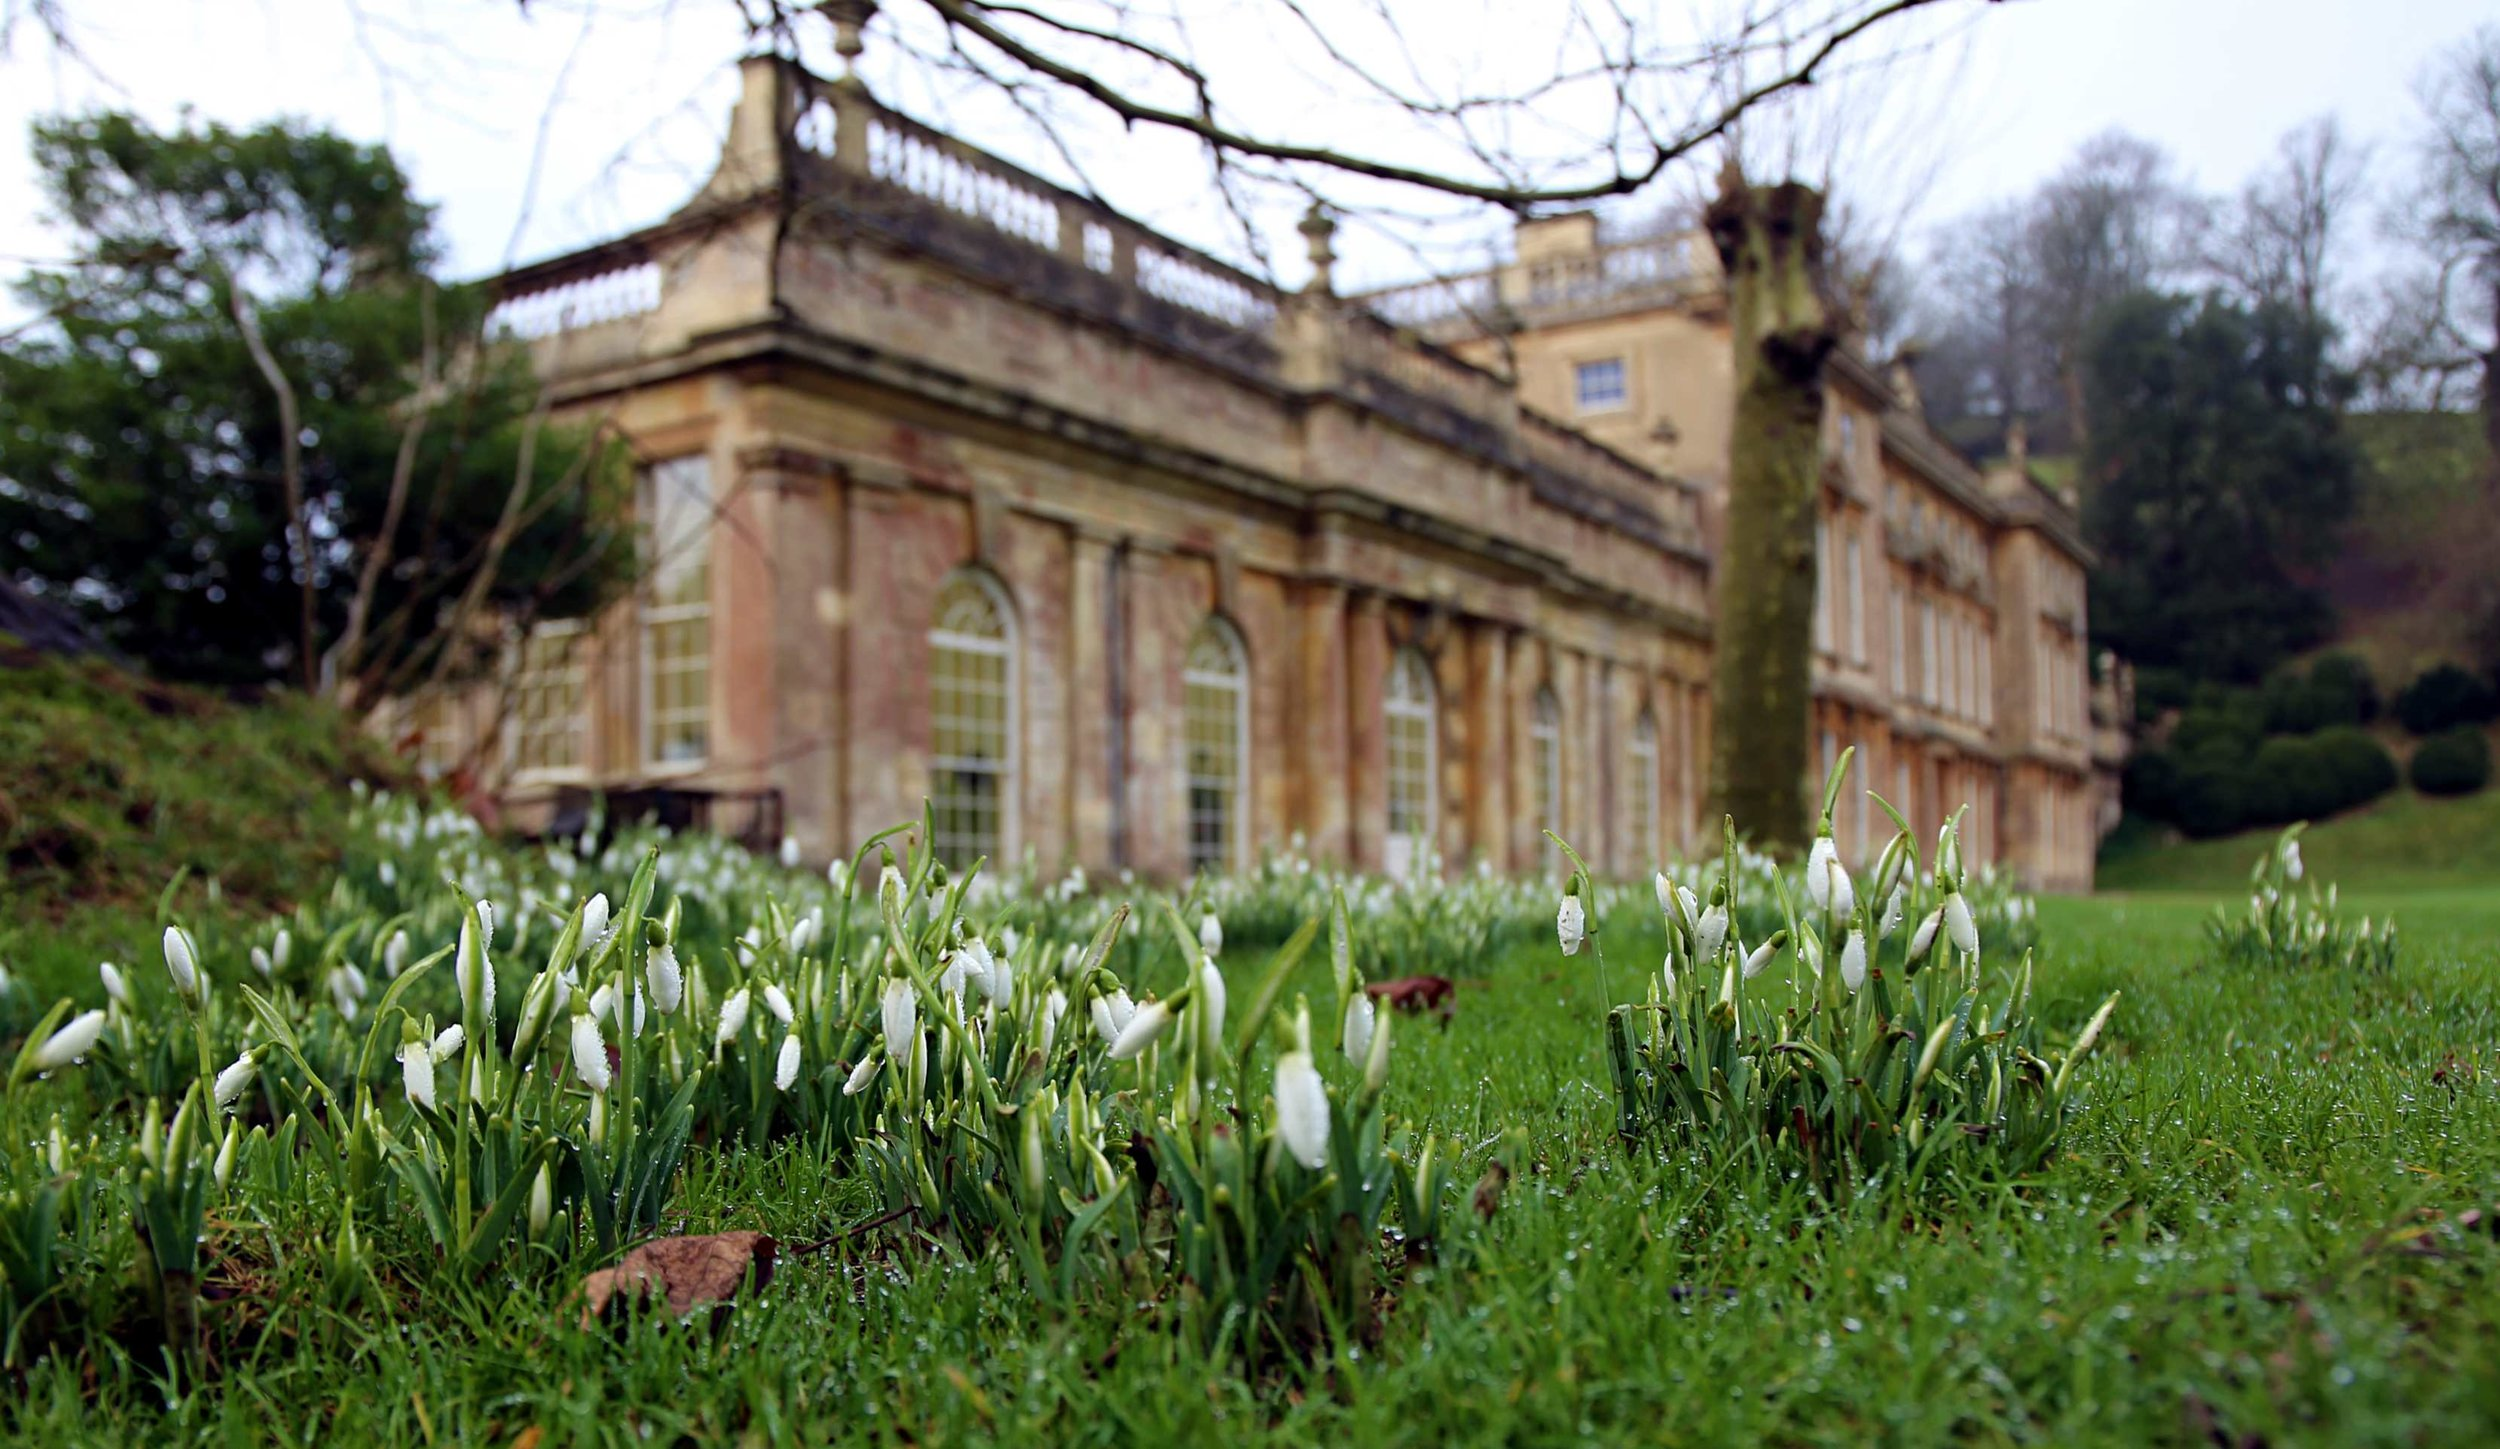 Snowdrops at Dyrham Park © National Trust / Laura Williams